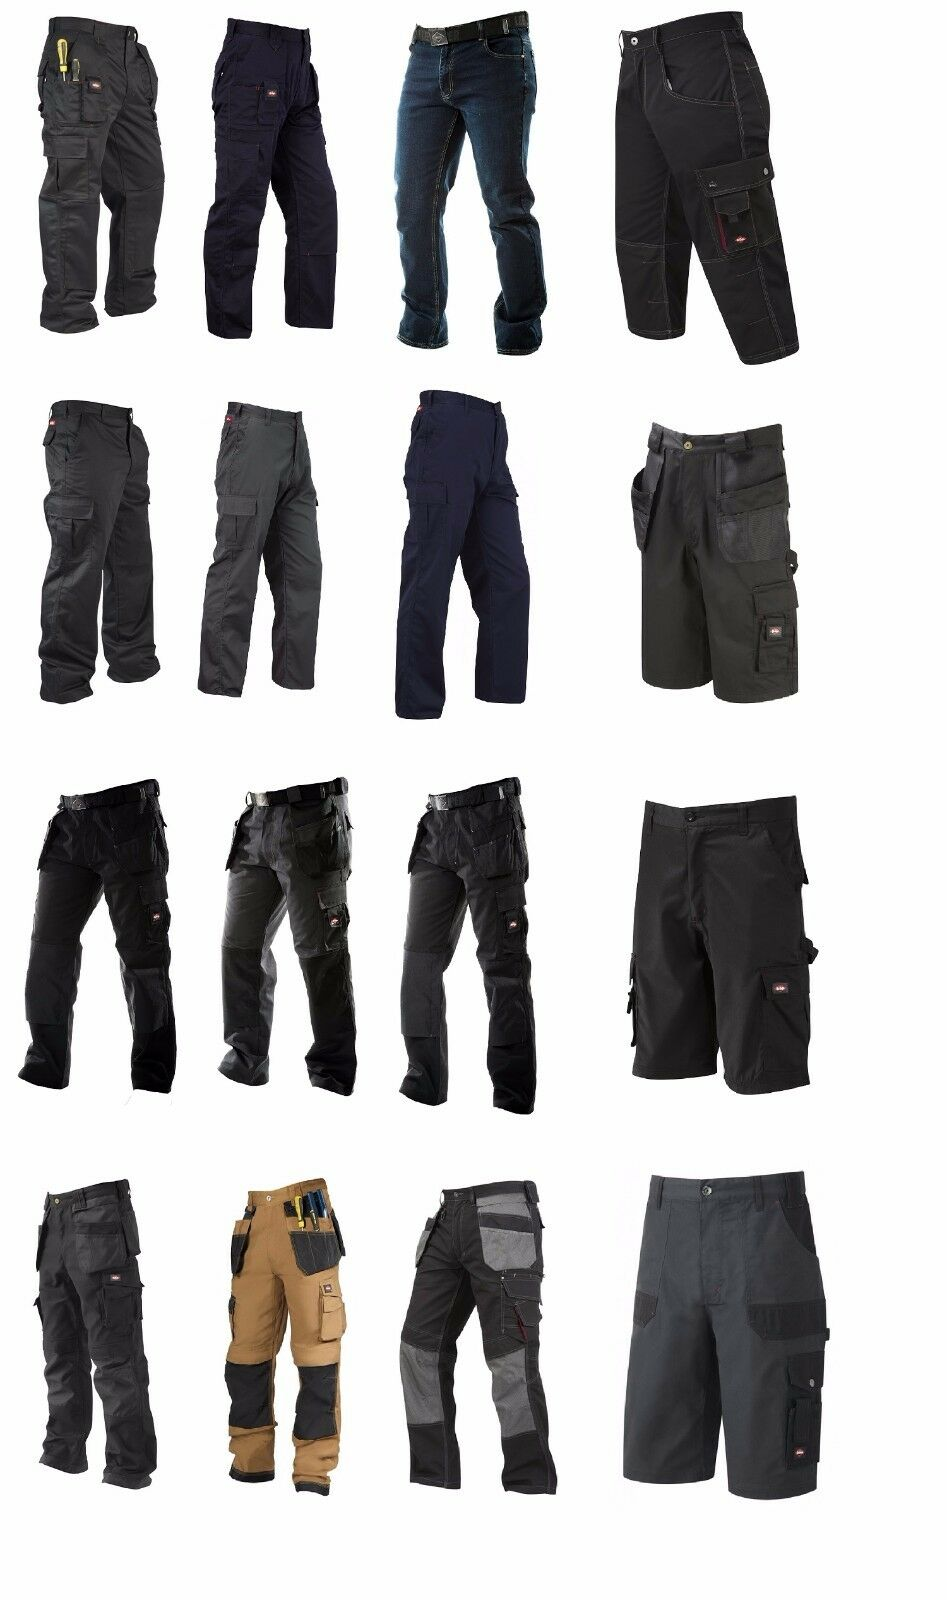 Lee Cooper Workwear Trousers 3 4 Pants & Shorts Jeans Cargo Combat Trousers New